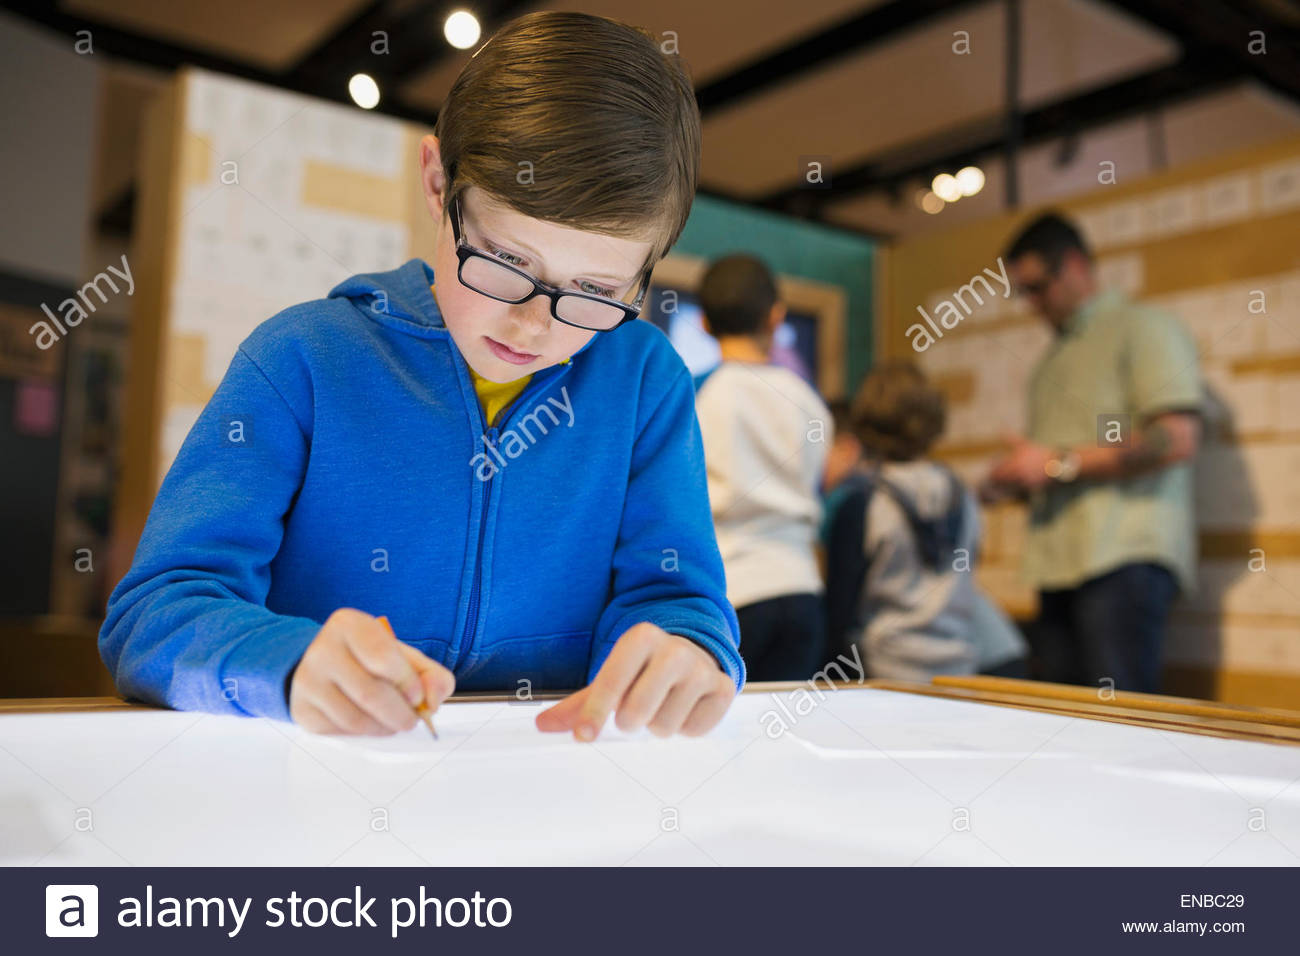 Boy tracing at light table at science center - Stock Image